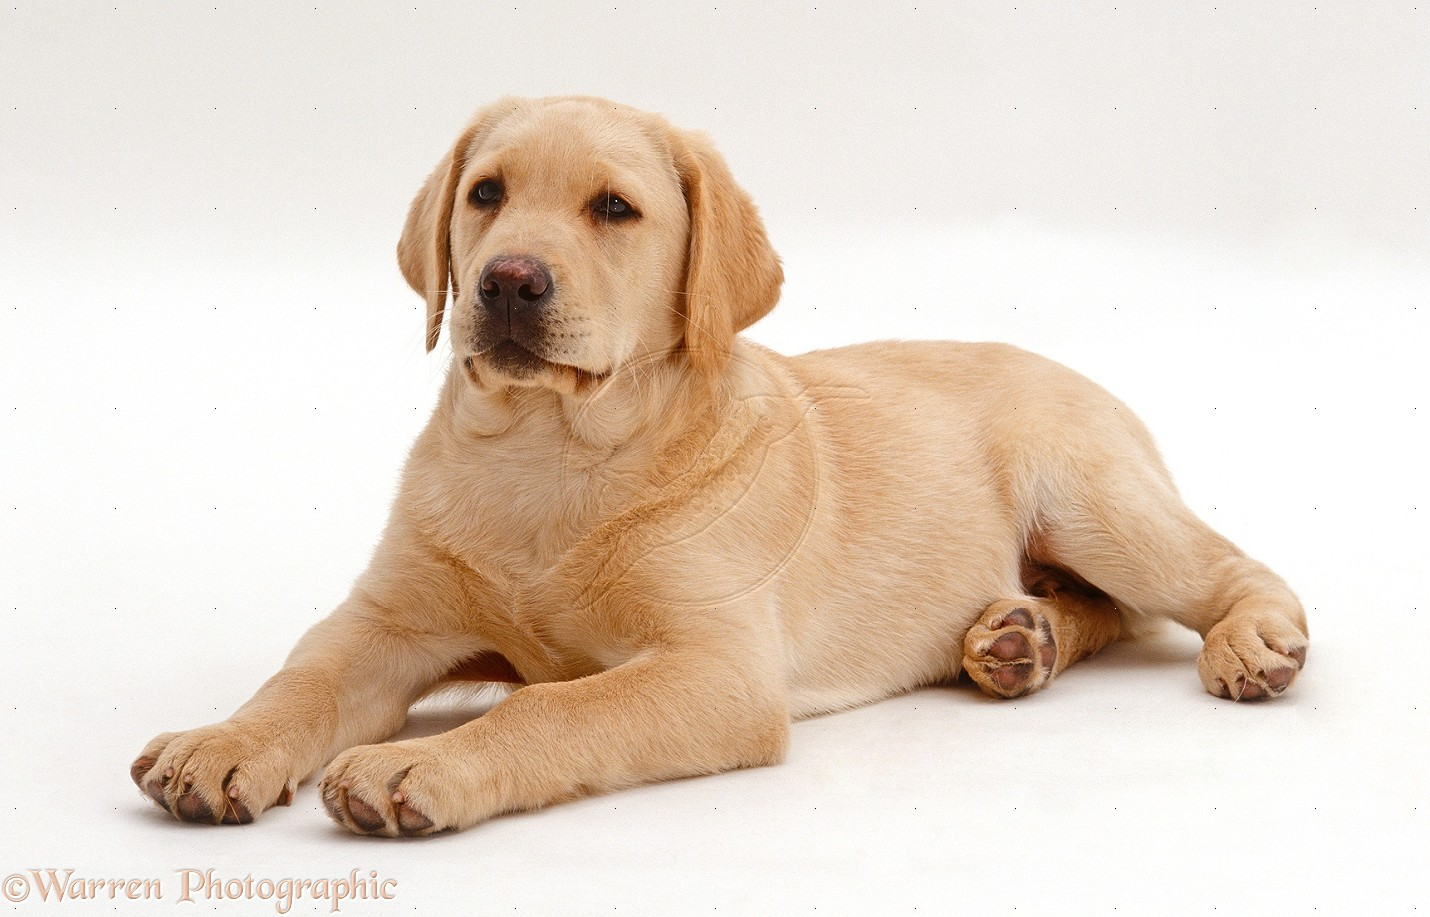 Free Download Golden Labrador Retriever Puppies 23 Hd Wallpaper 1430x917 For Your Desktop Mobile Tablet Explore 96 Labrador Dog Wallpapers Labrador Dog Wallpapers Labrador Wallpaper Wallpaper Labrador Retriever